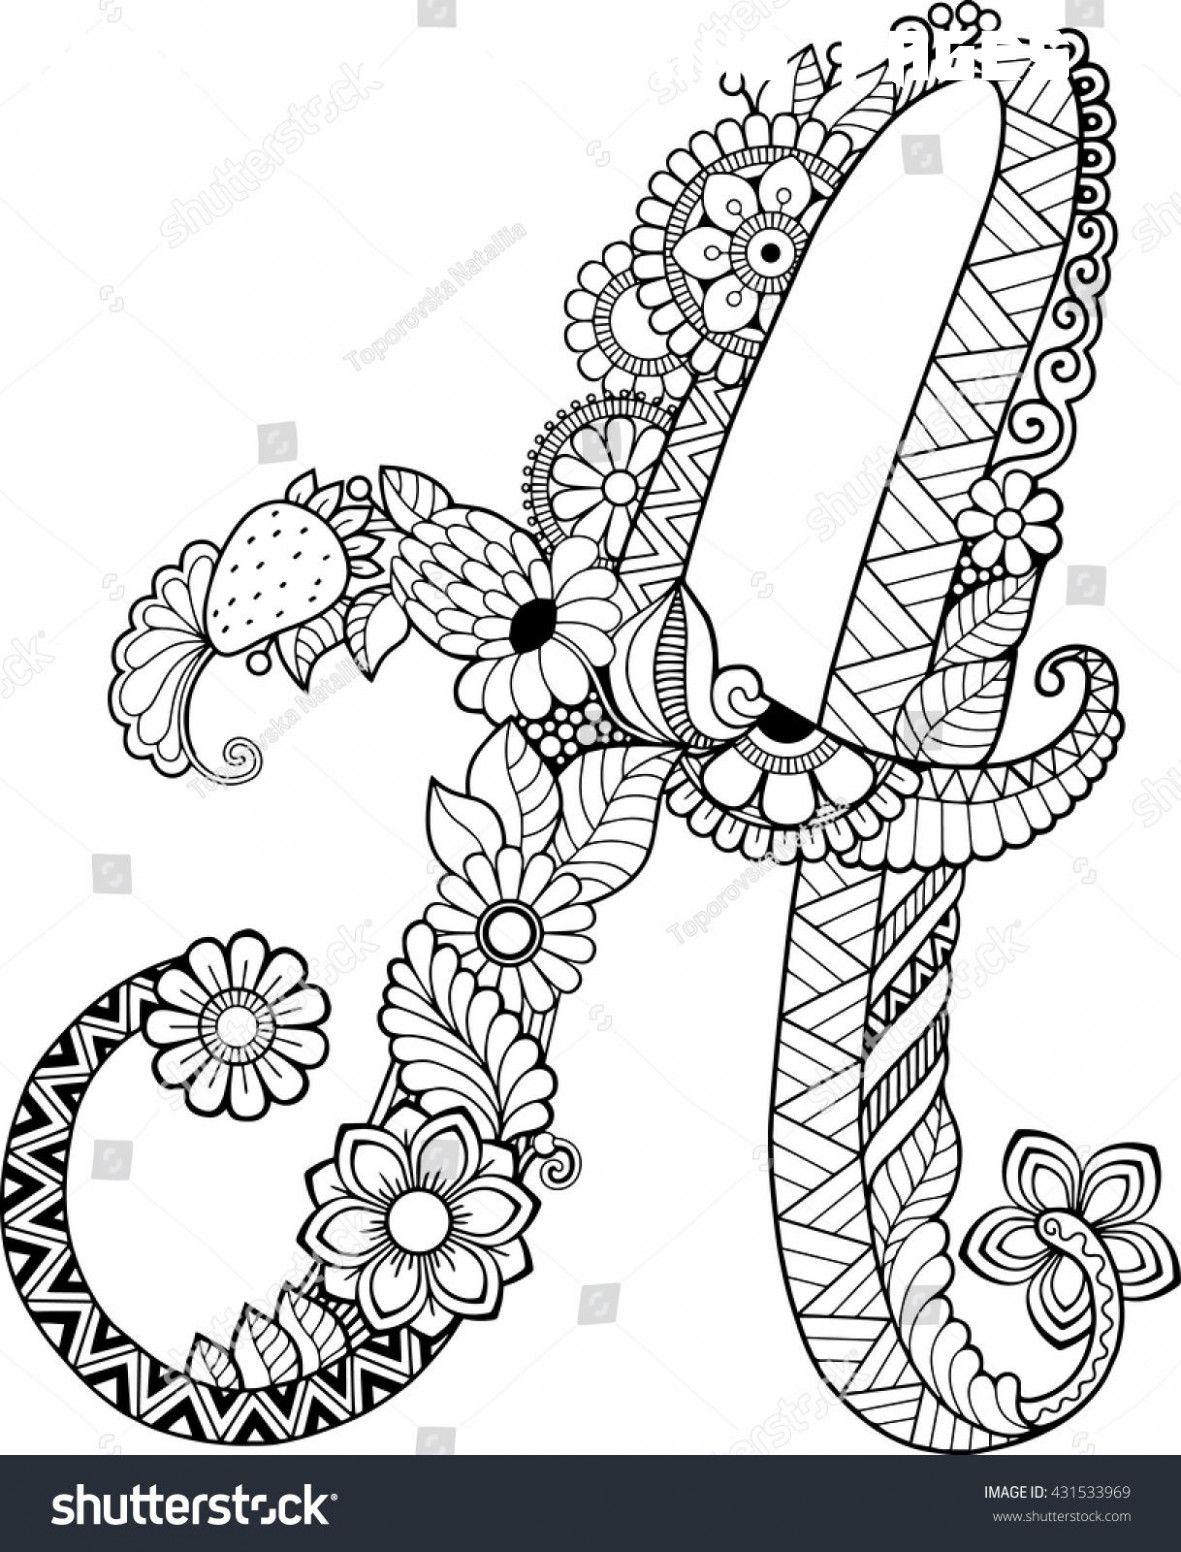 Free Printable Alphabet Coloring Letter R With Pattern For Kids And Adults Free Stencils Printables Alphabet Coloring Pages Free Stencils Printables Templates